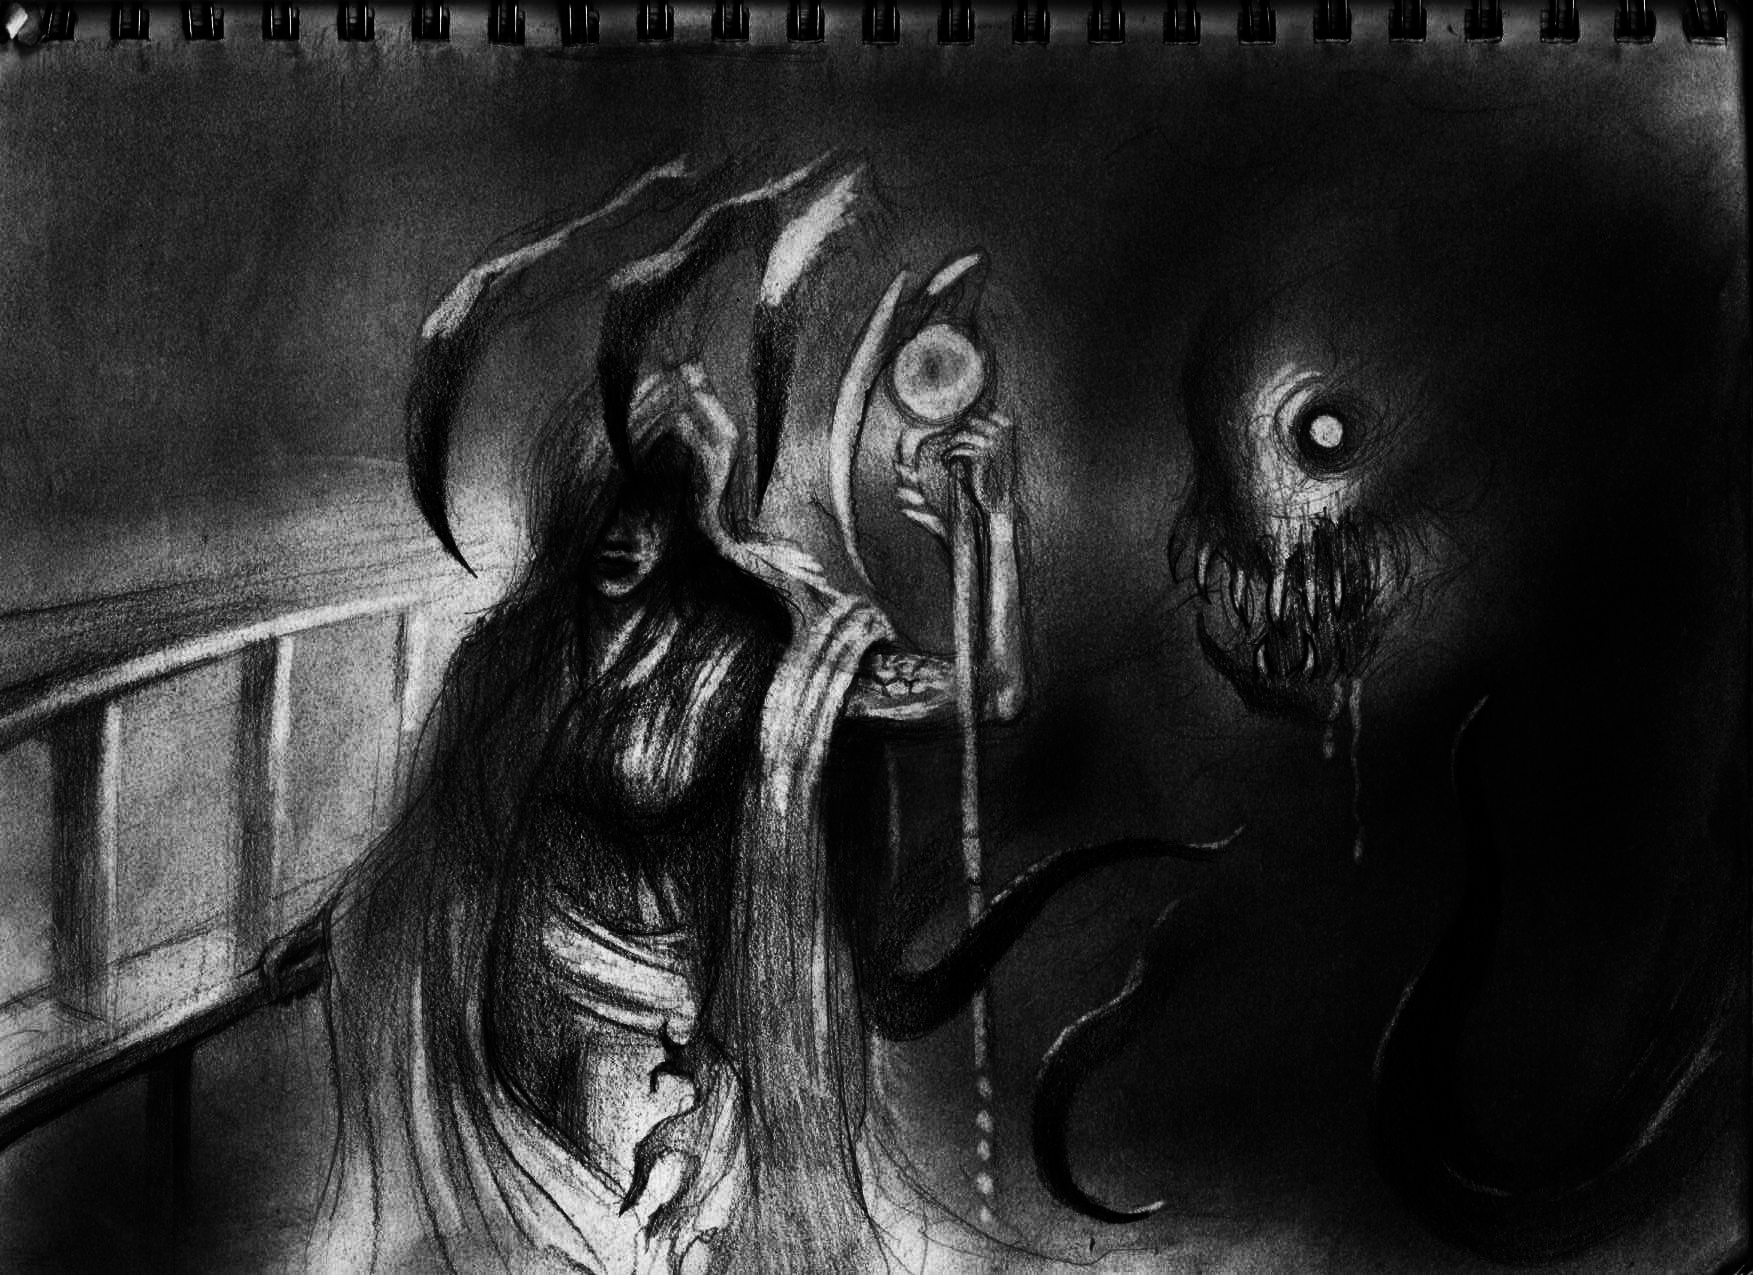 Dont Ever Look Behind You By Turma13 On Newgrounds